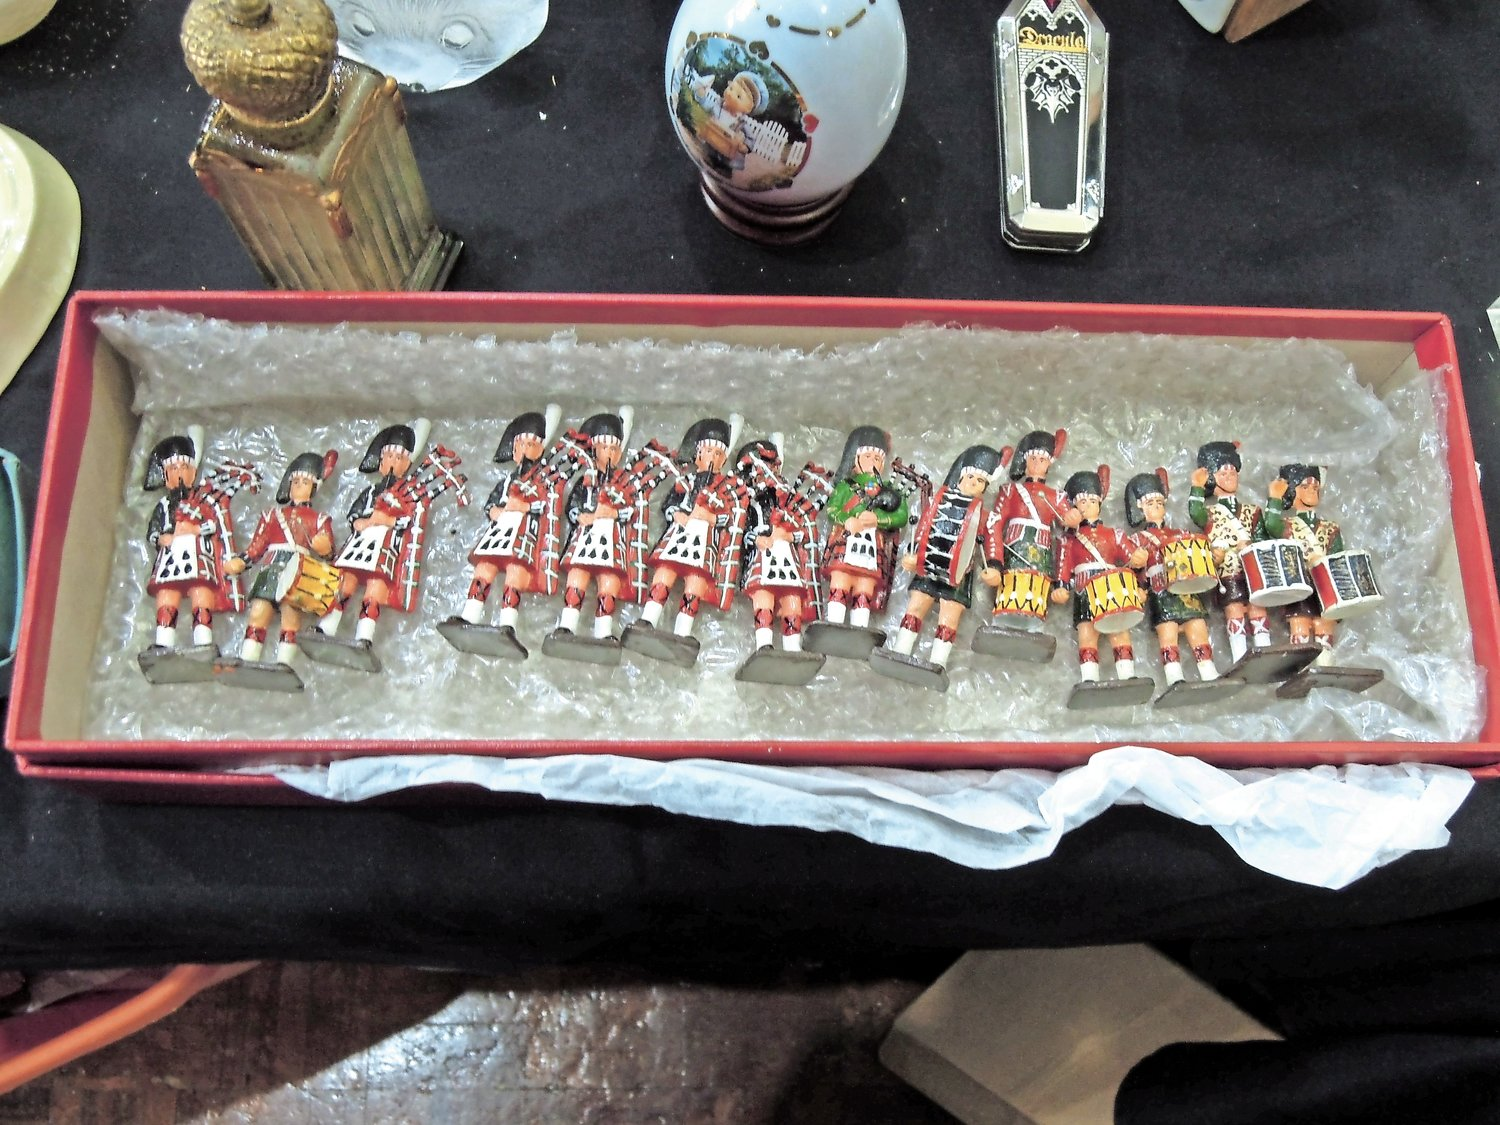 A set of miniature Scots soldiers offered at Jim Ritchie's booth.